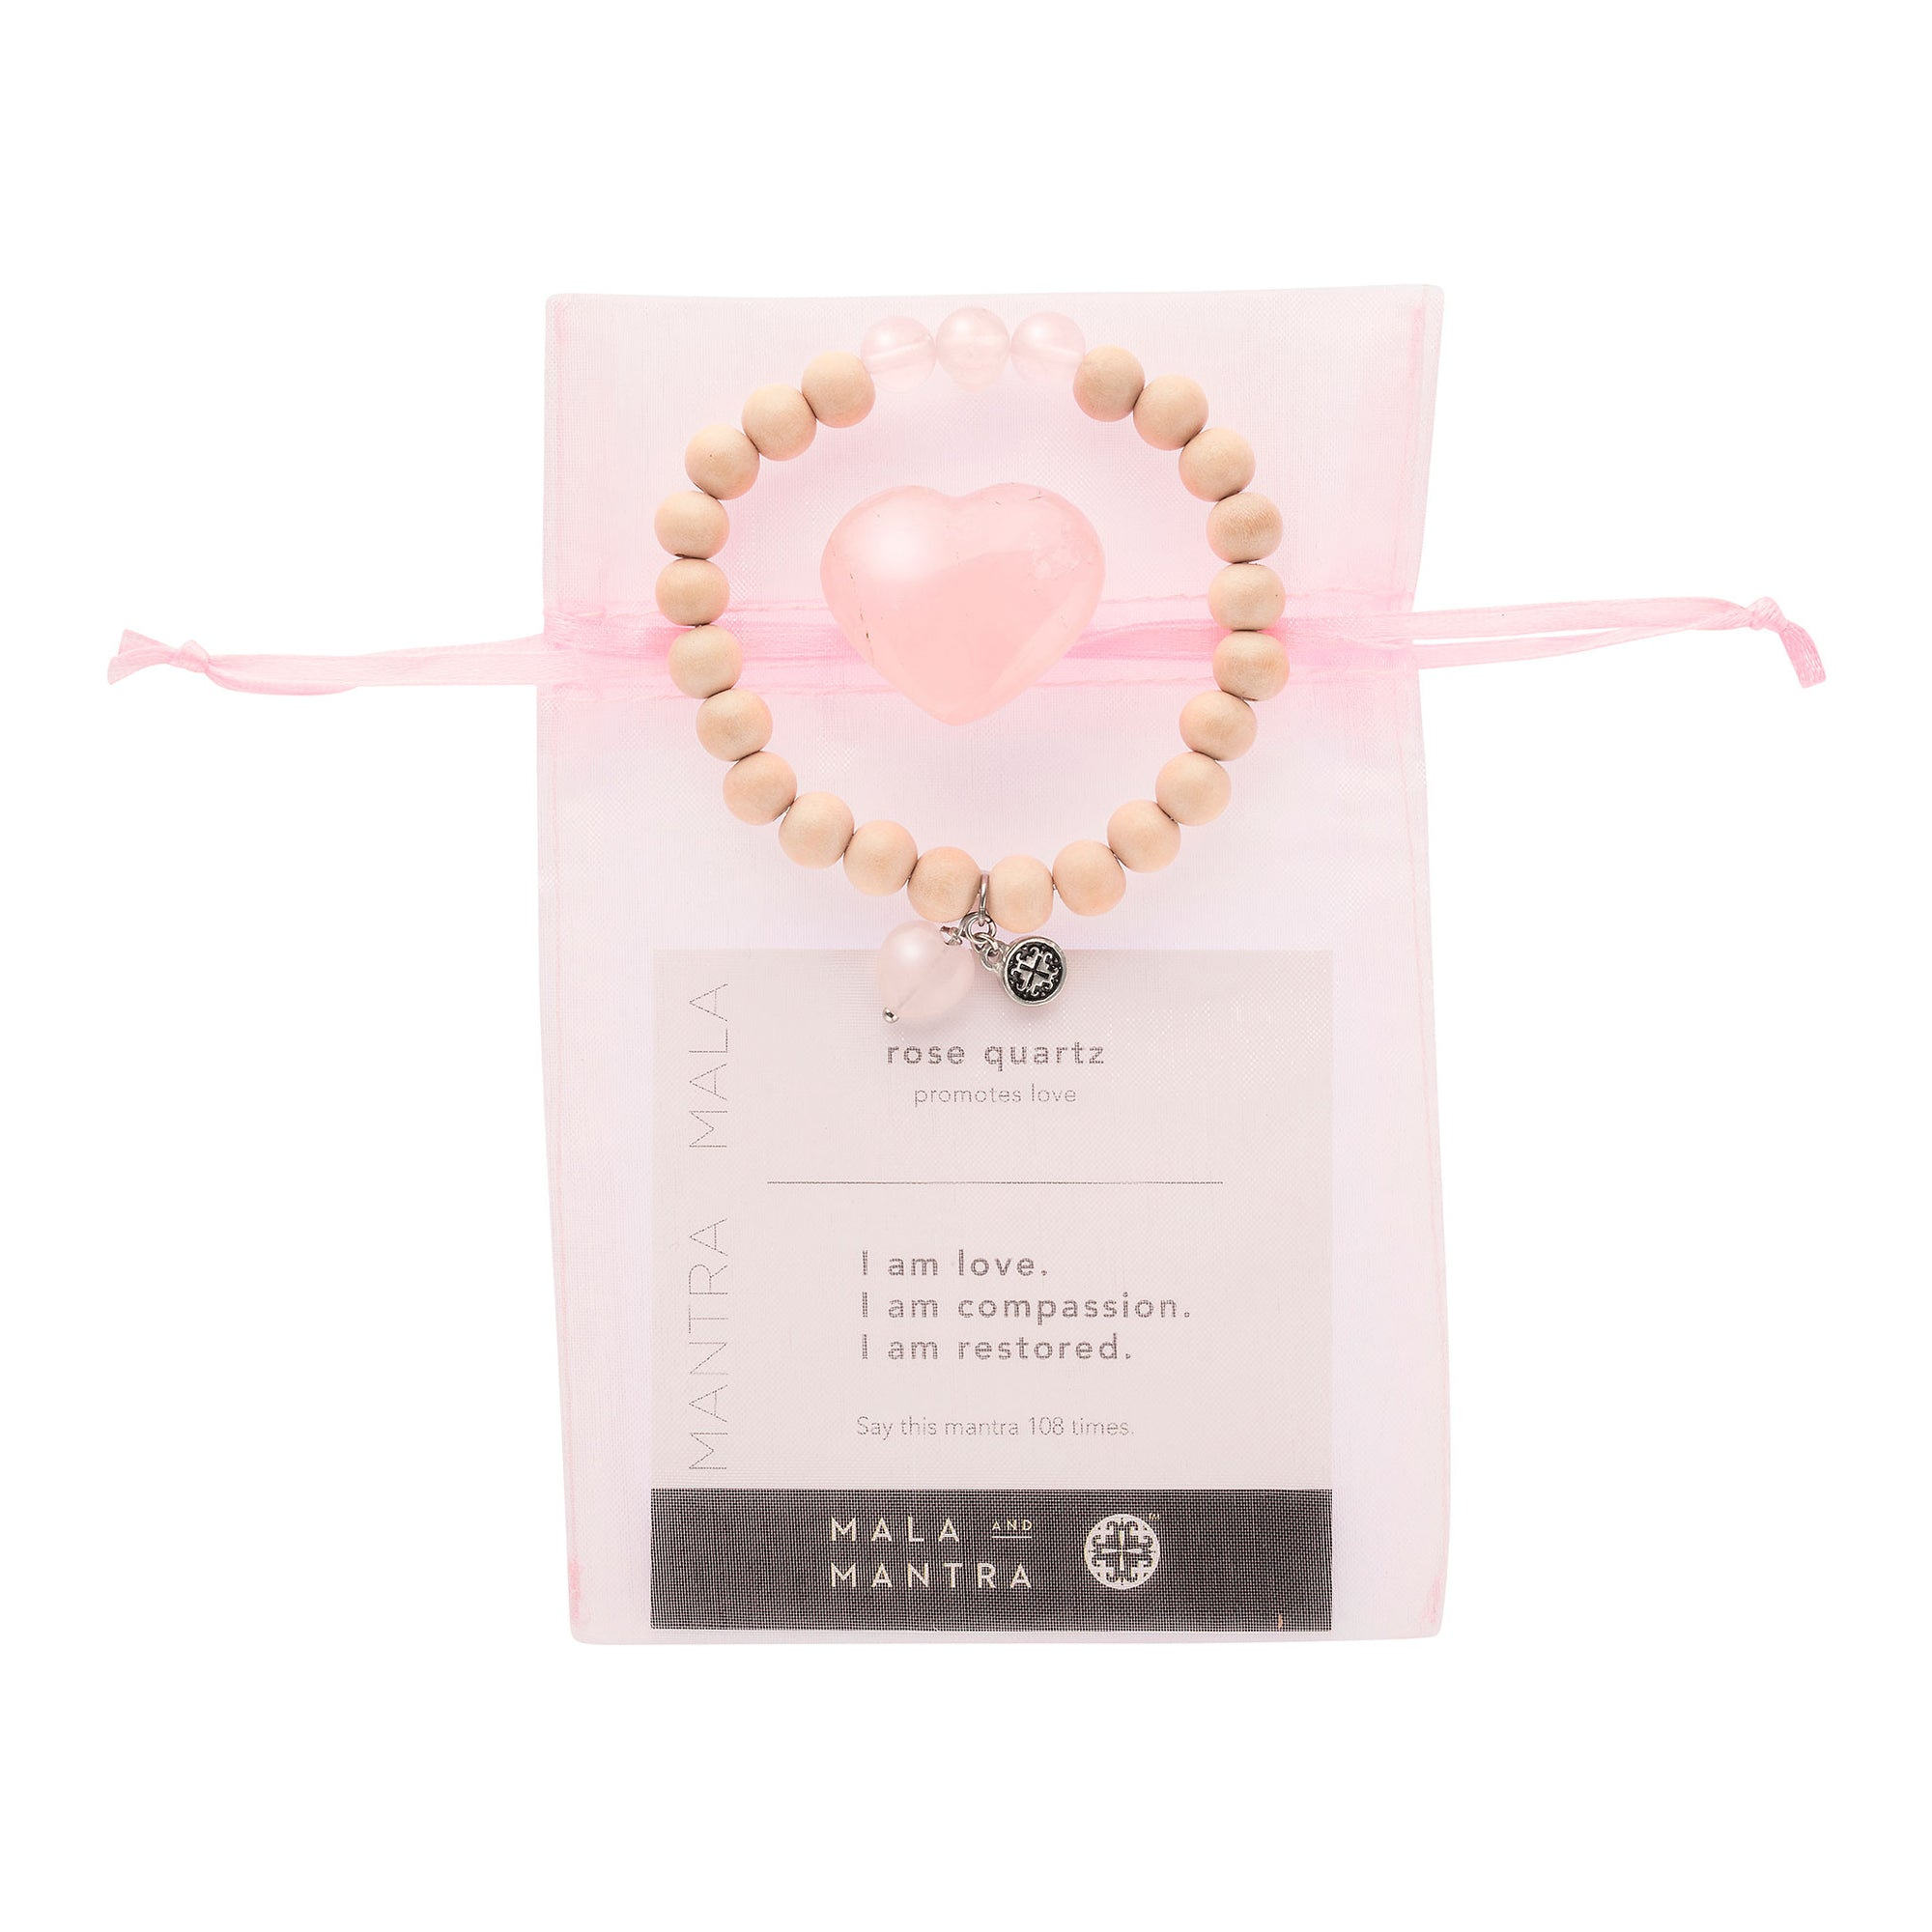 BE LOVE: Whitewood + Rose Quartz Triple Happiness Stretch Bracelet with Rose Quartz Heart Charm + Rose Quartz Heart Stone Gift Set